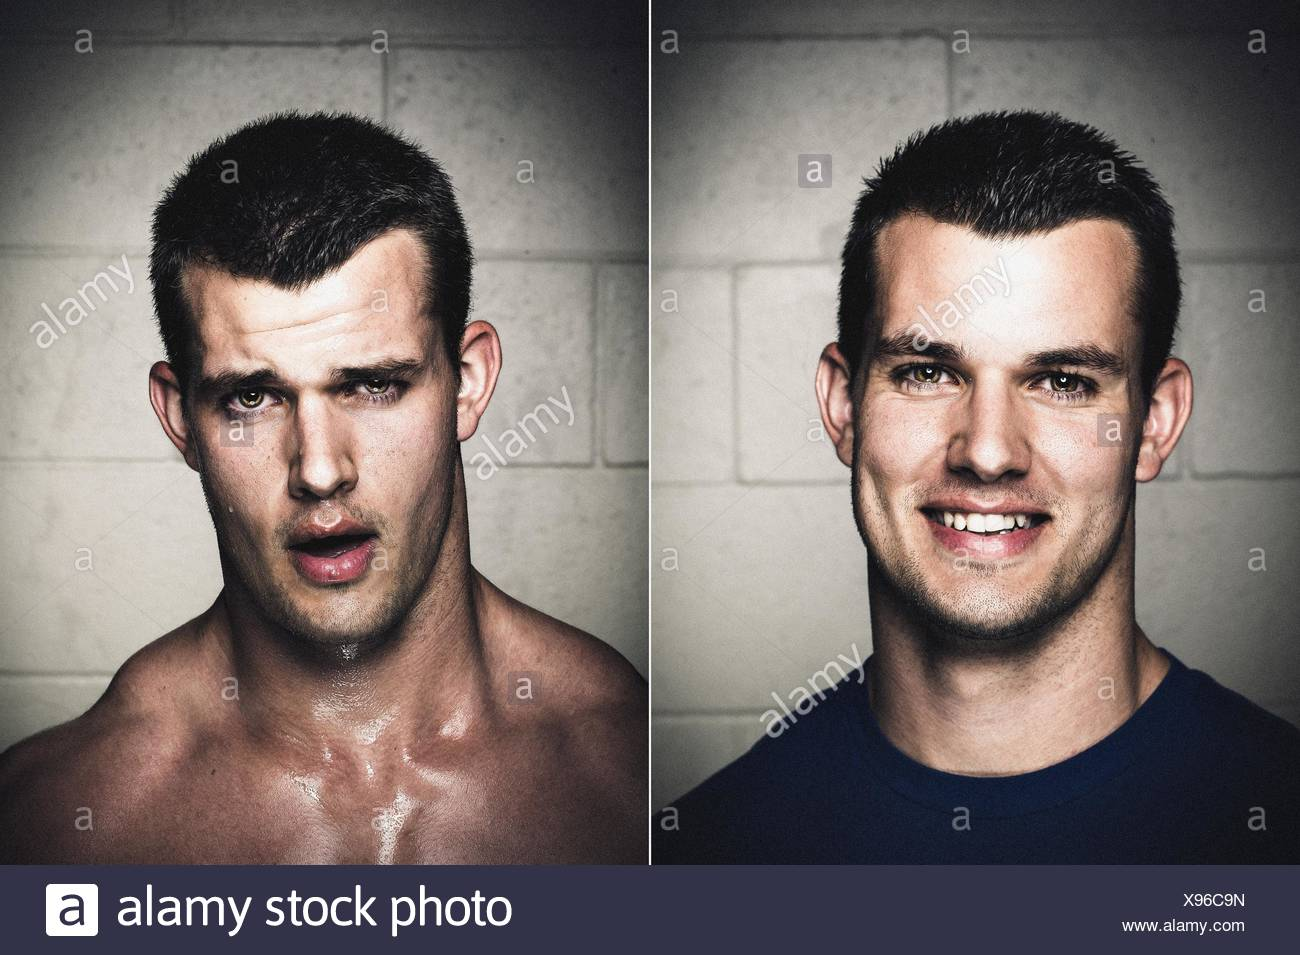 Portraits of young man before and after workout - Stock Image